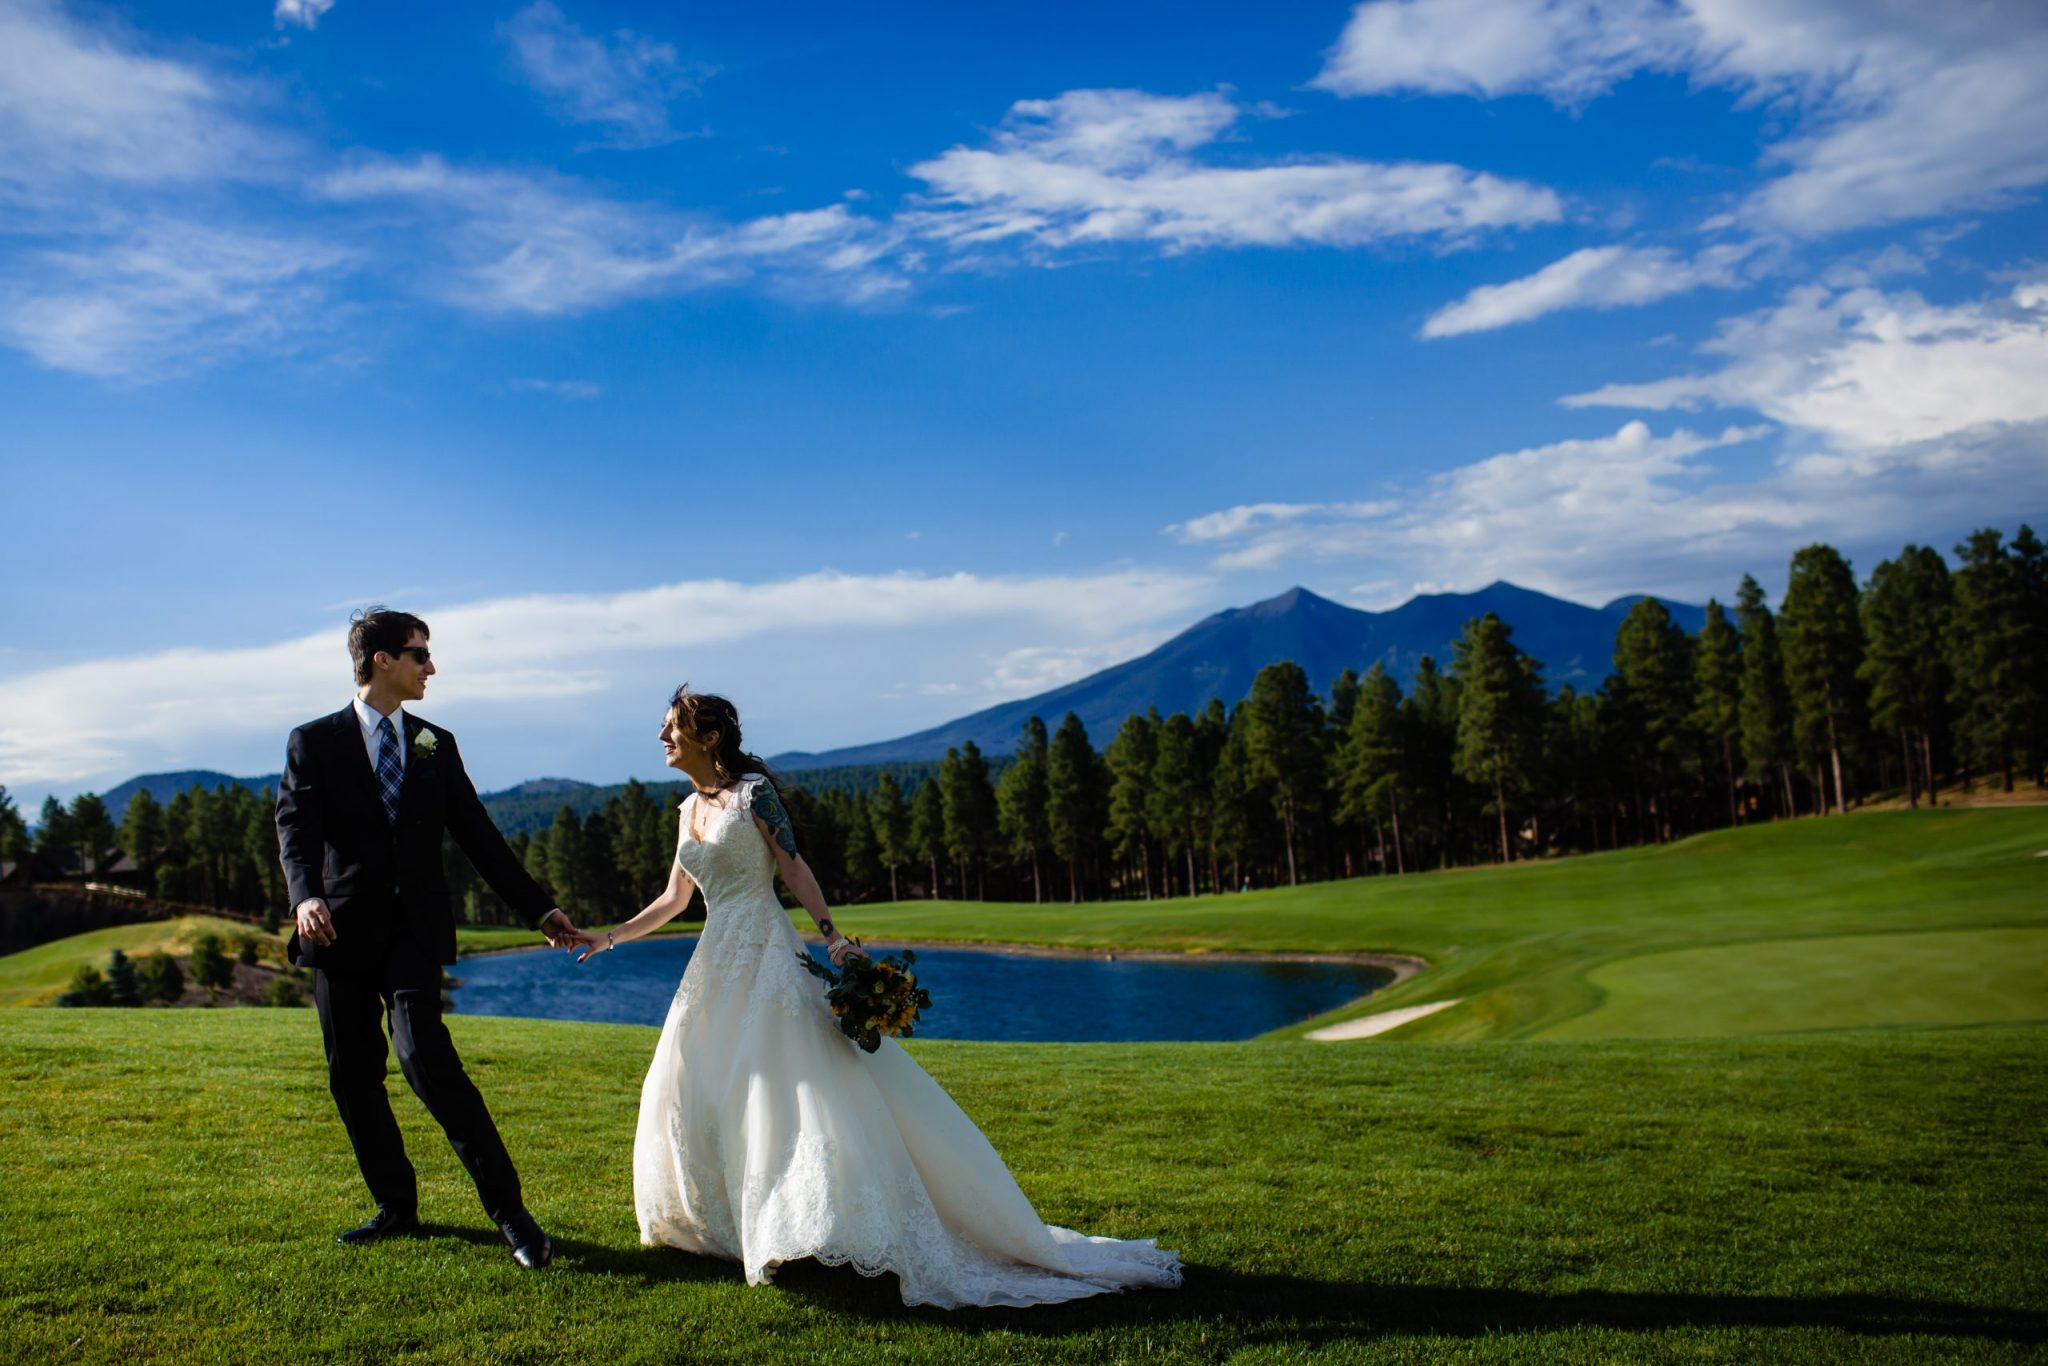 Flagstaff Ranch Wedding, Arizona wedding photographer, northern arizona wedding photographer, documentary wedding photographer